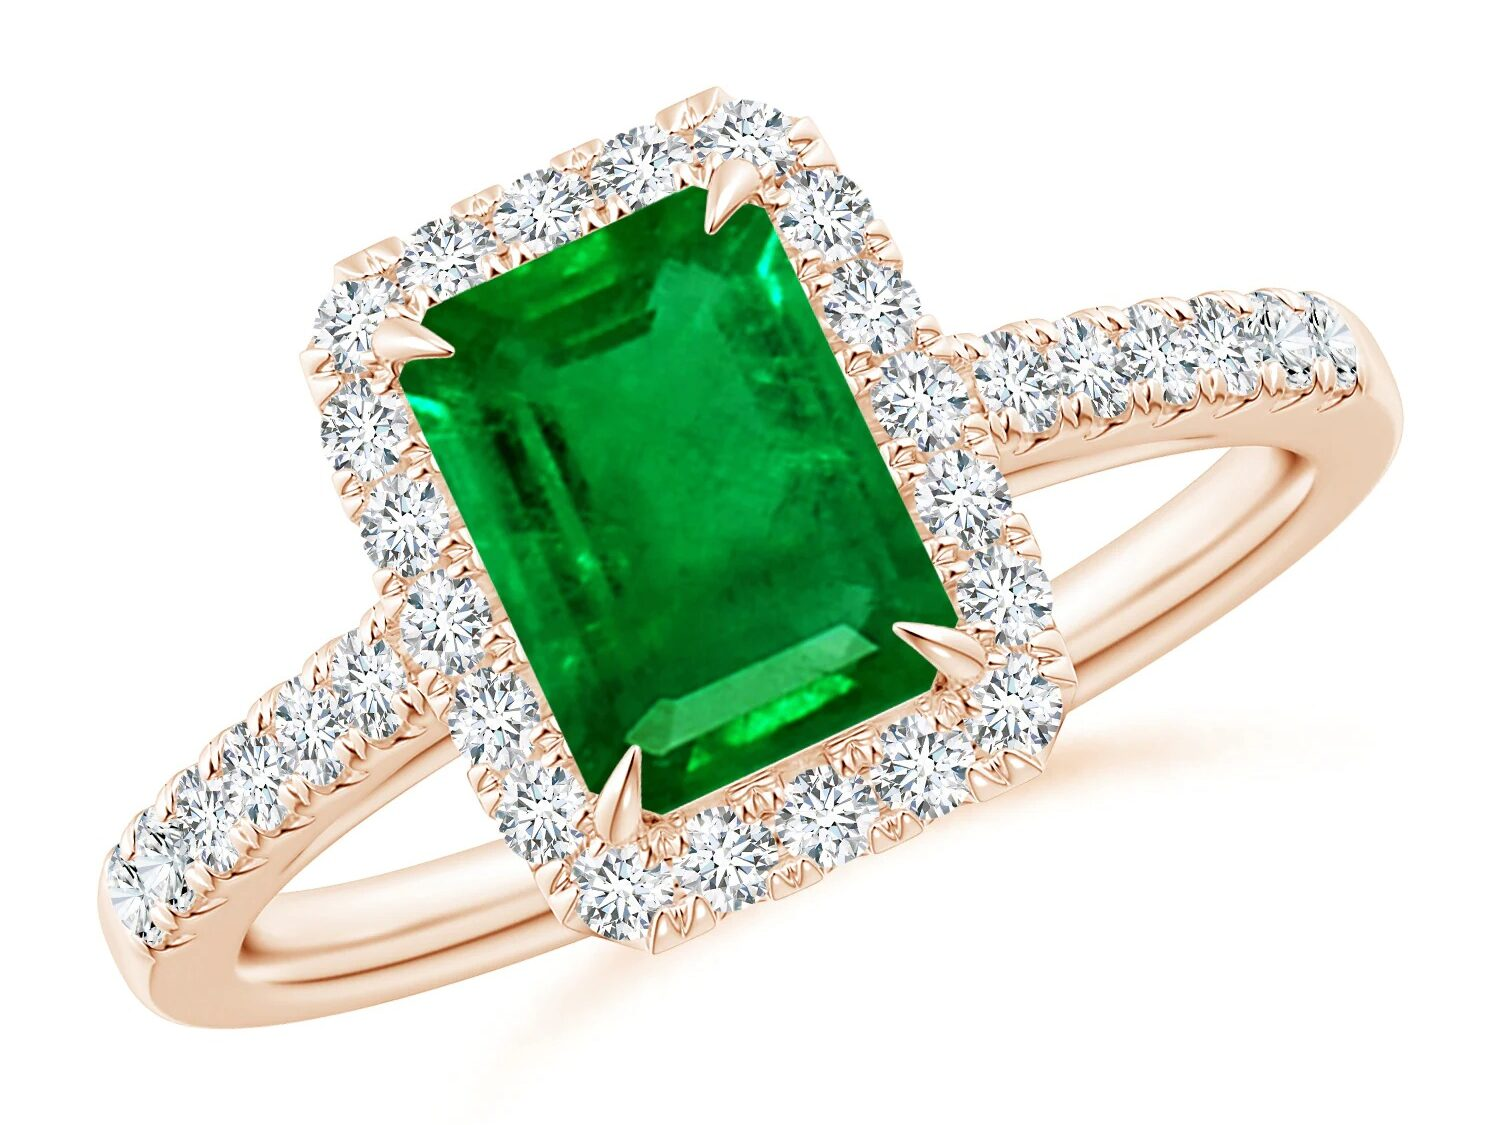 emerald cut emerald engagement ring with diamond halo